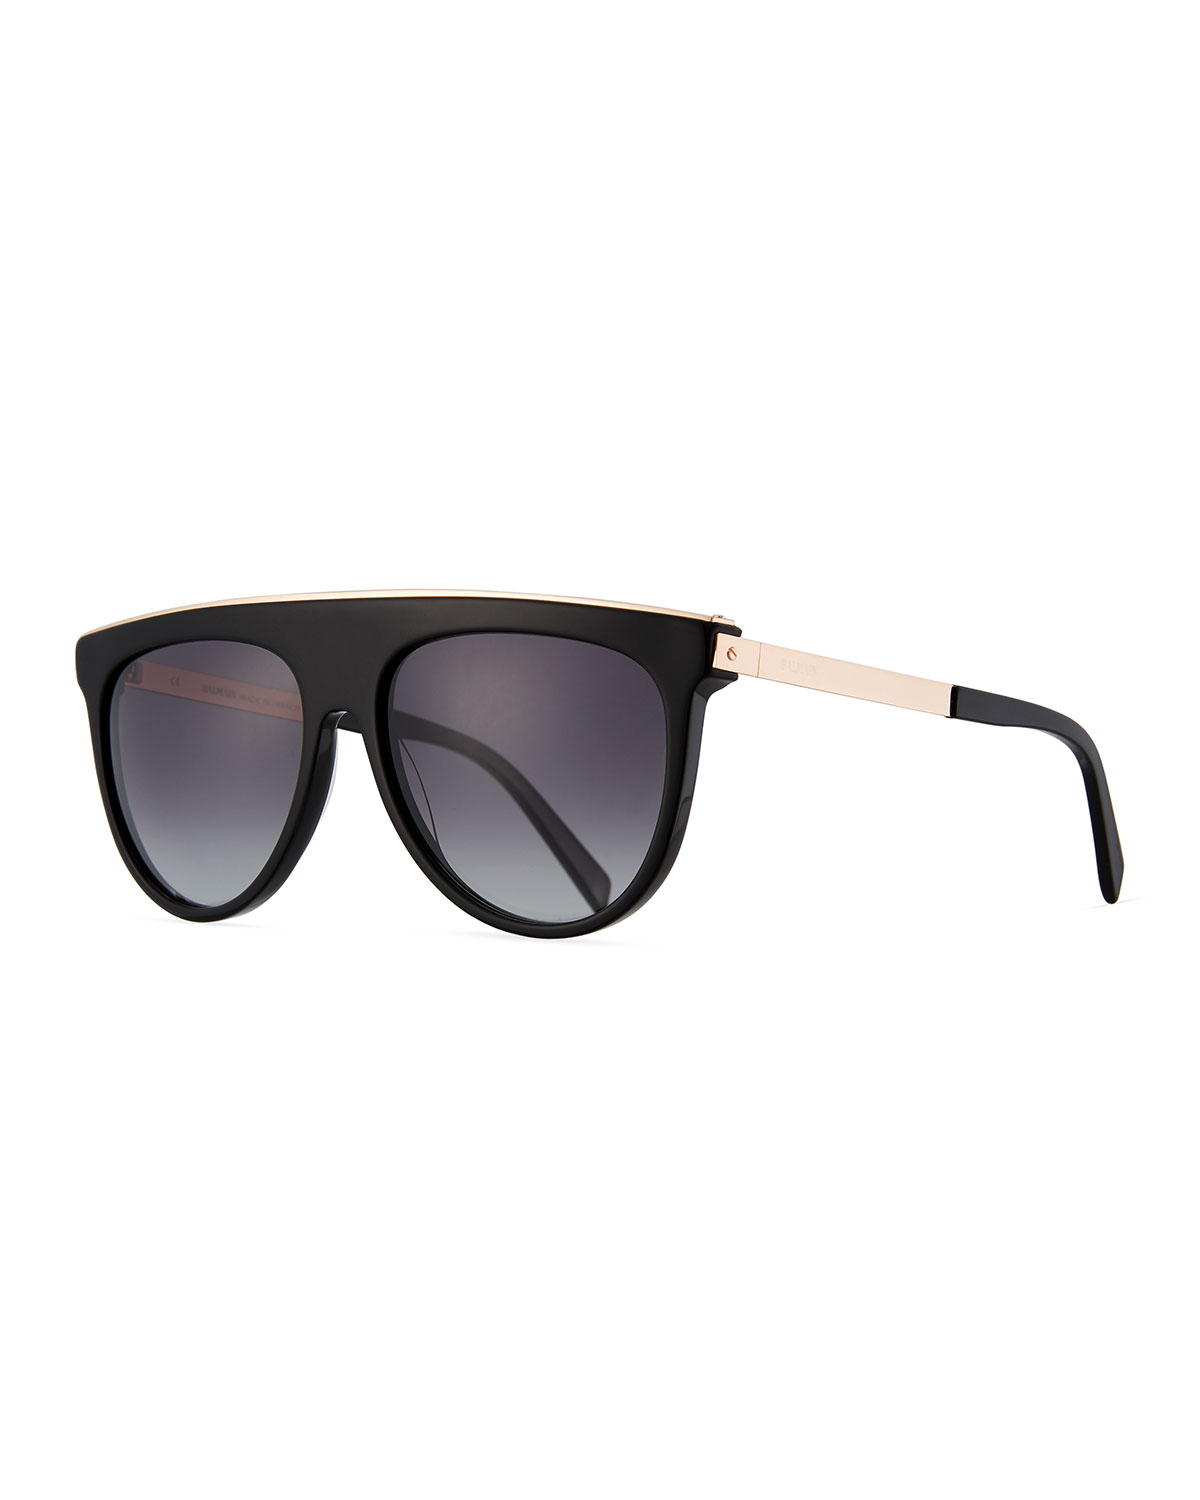 Flattop Acetate Aviator-Style Sunglasses, Black Pattern